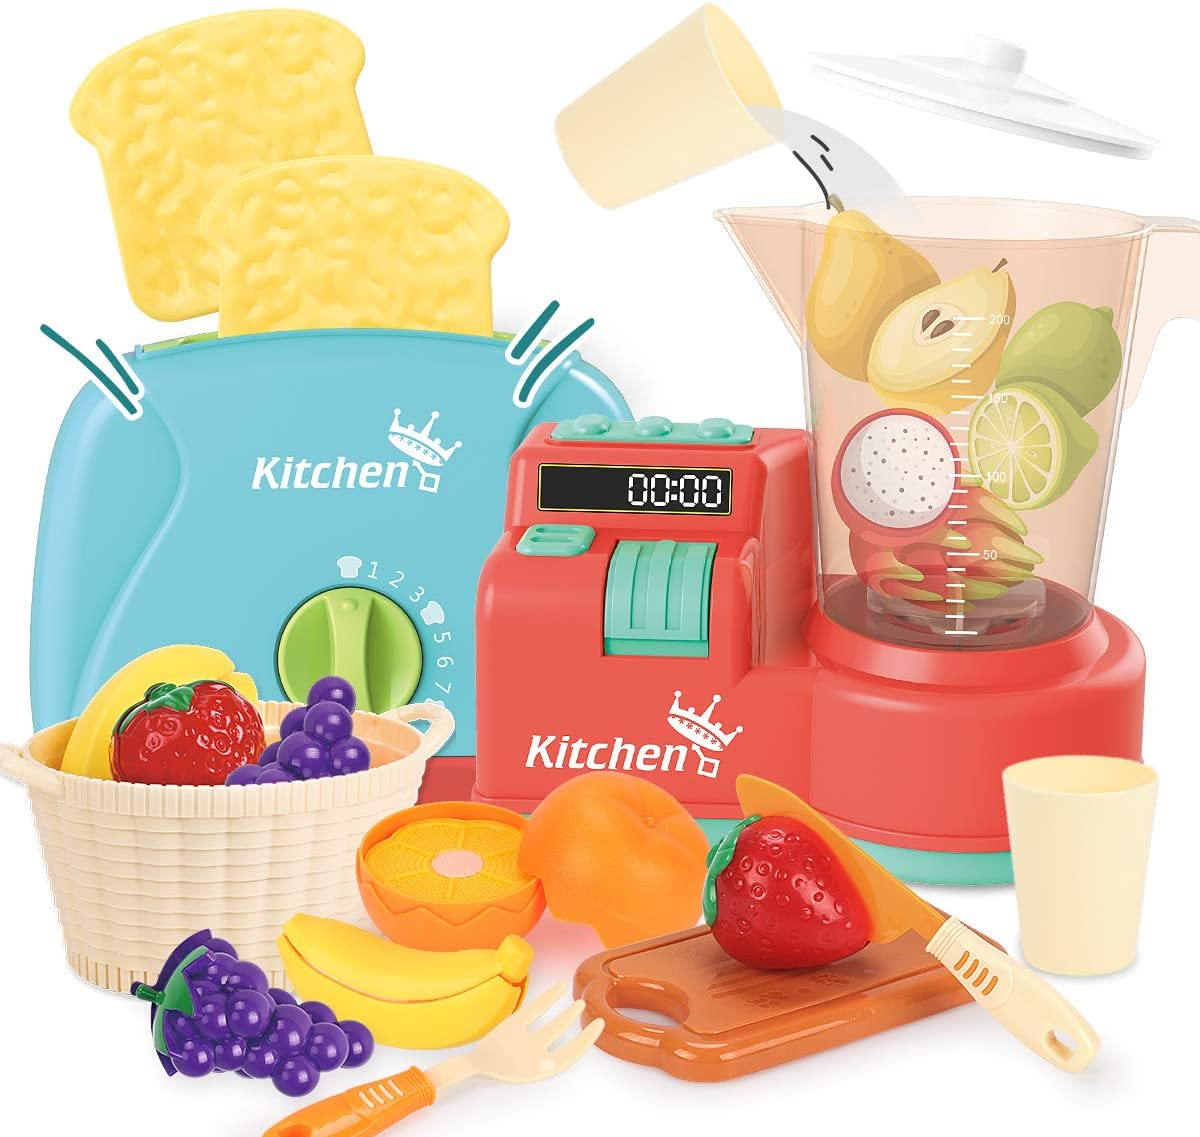 REMOKING Kitchen Play Toy Sets, Educational Learning Pretend Kitchen Juice Blender,Toaster, Utensils, Cutting Fruits Set , Kitchen Accessories for Kids, Great Gifts for Kids 3 Years and up